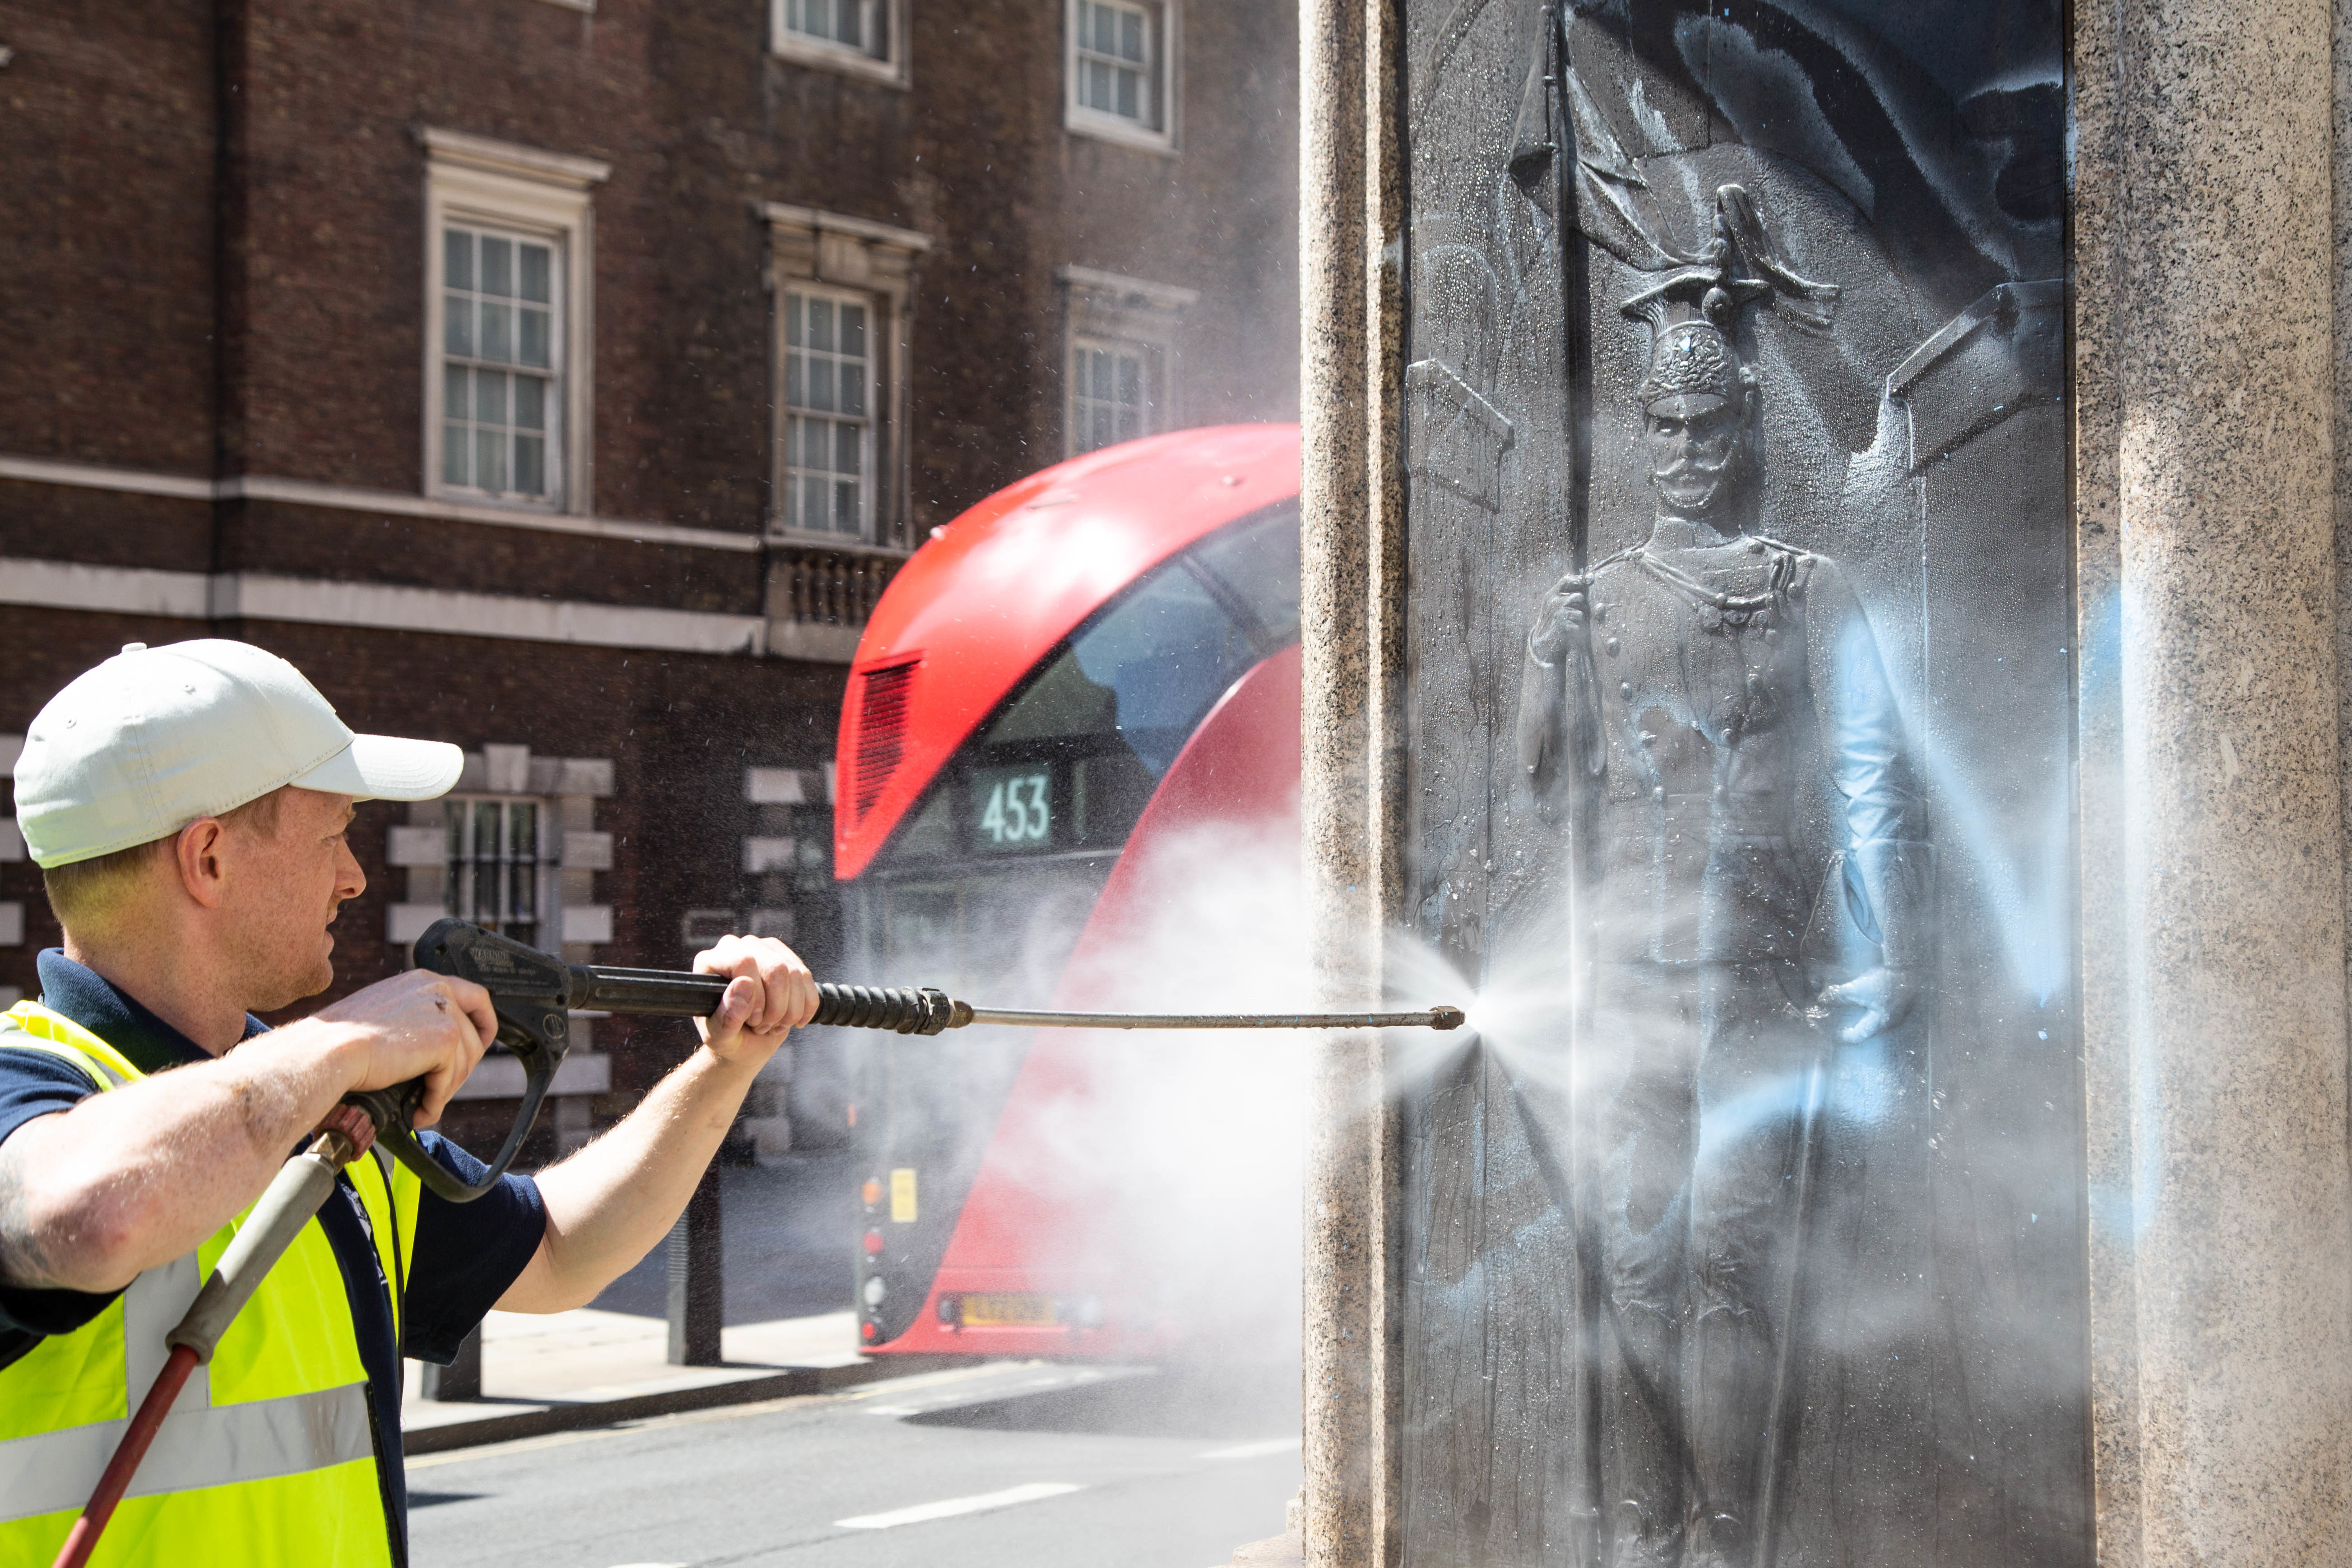 Equestrian statue of the Duke of Cambridge in Whitehall is being cleaned after it was graffitied with a slogan BLM. Clean up of historical statues after fourth consecutive week of Black Lives Matter protests in London. (Photo by Thabo Jaiyesimi / SOPA Images/Sipa USA)